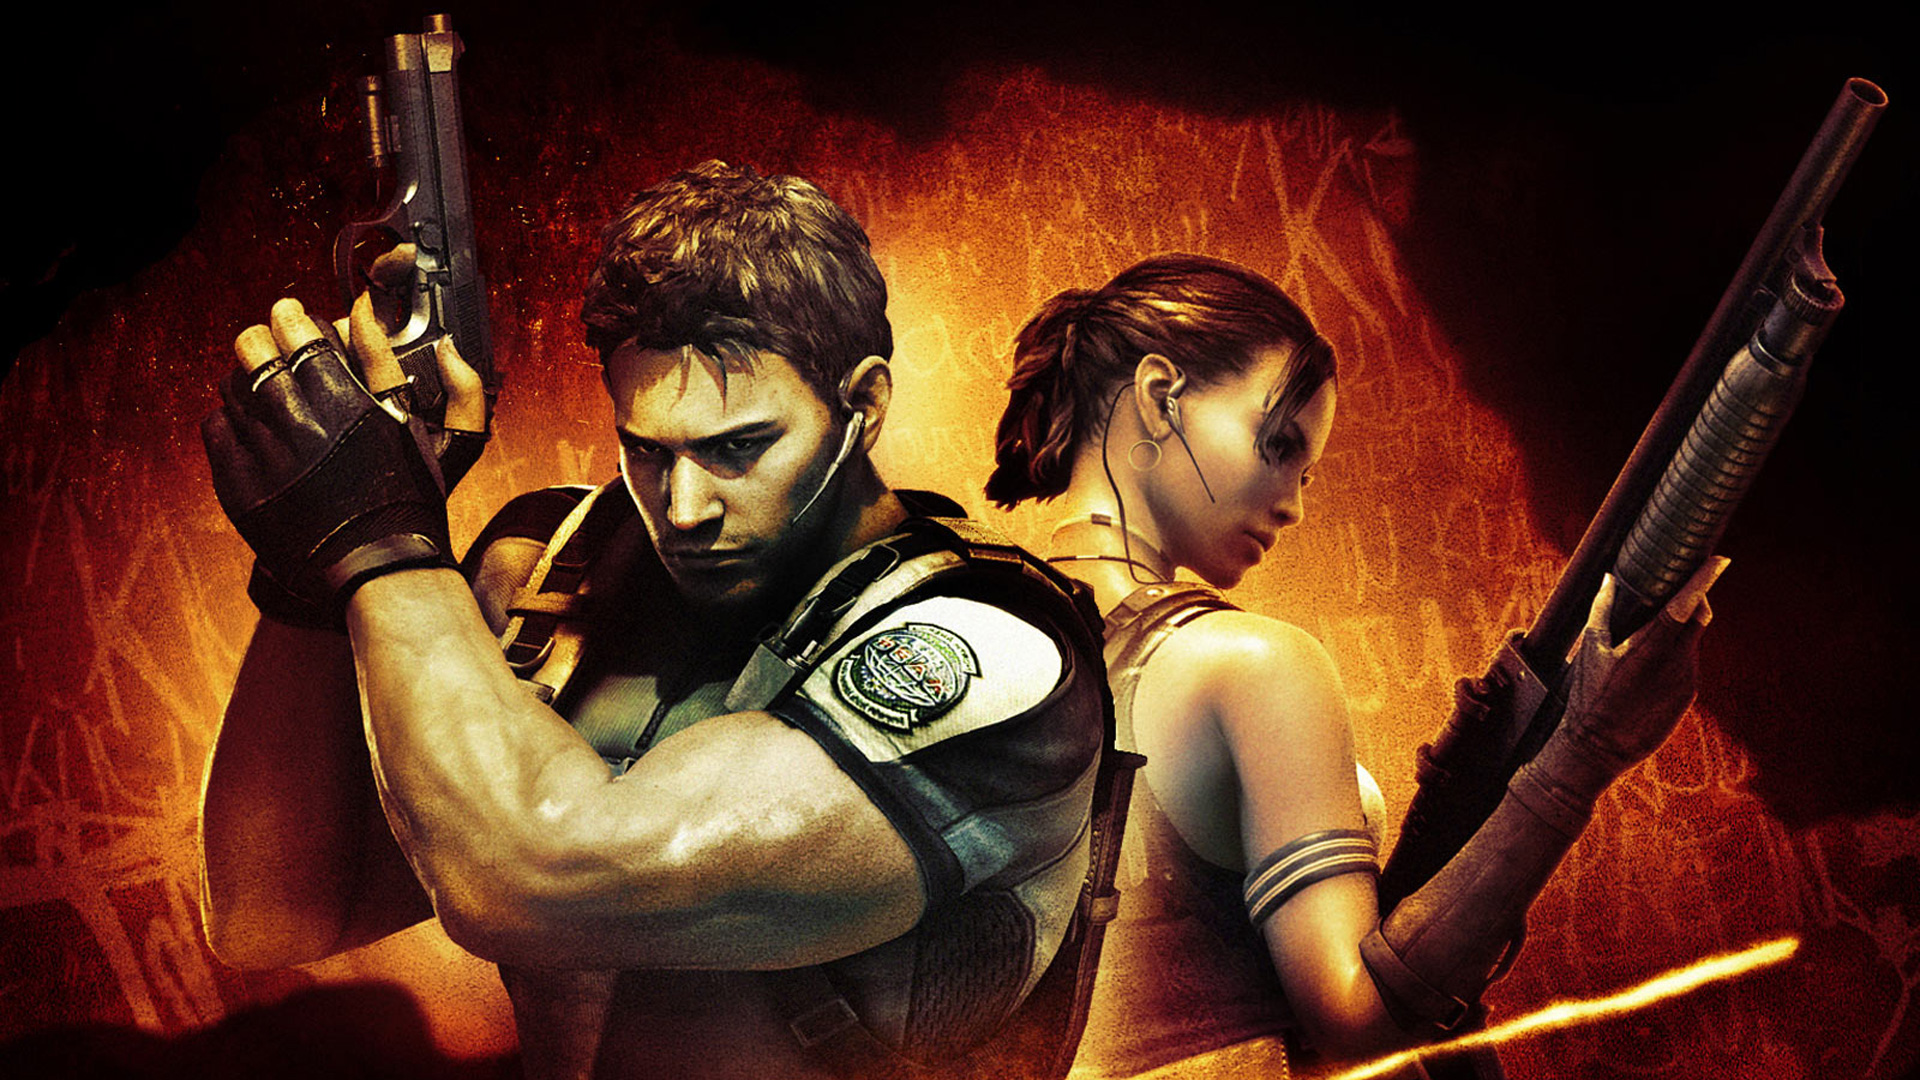 Resident Evil 5 Wallpaper in 1920x1080